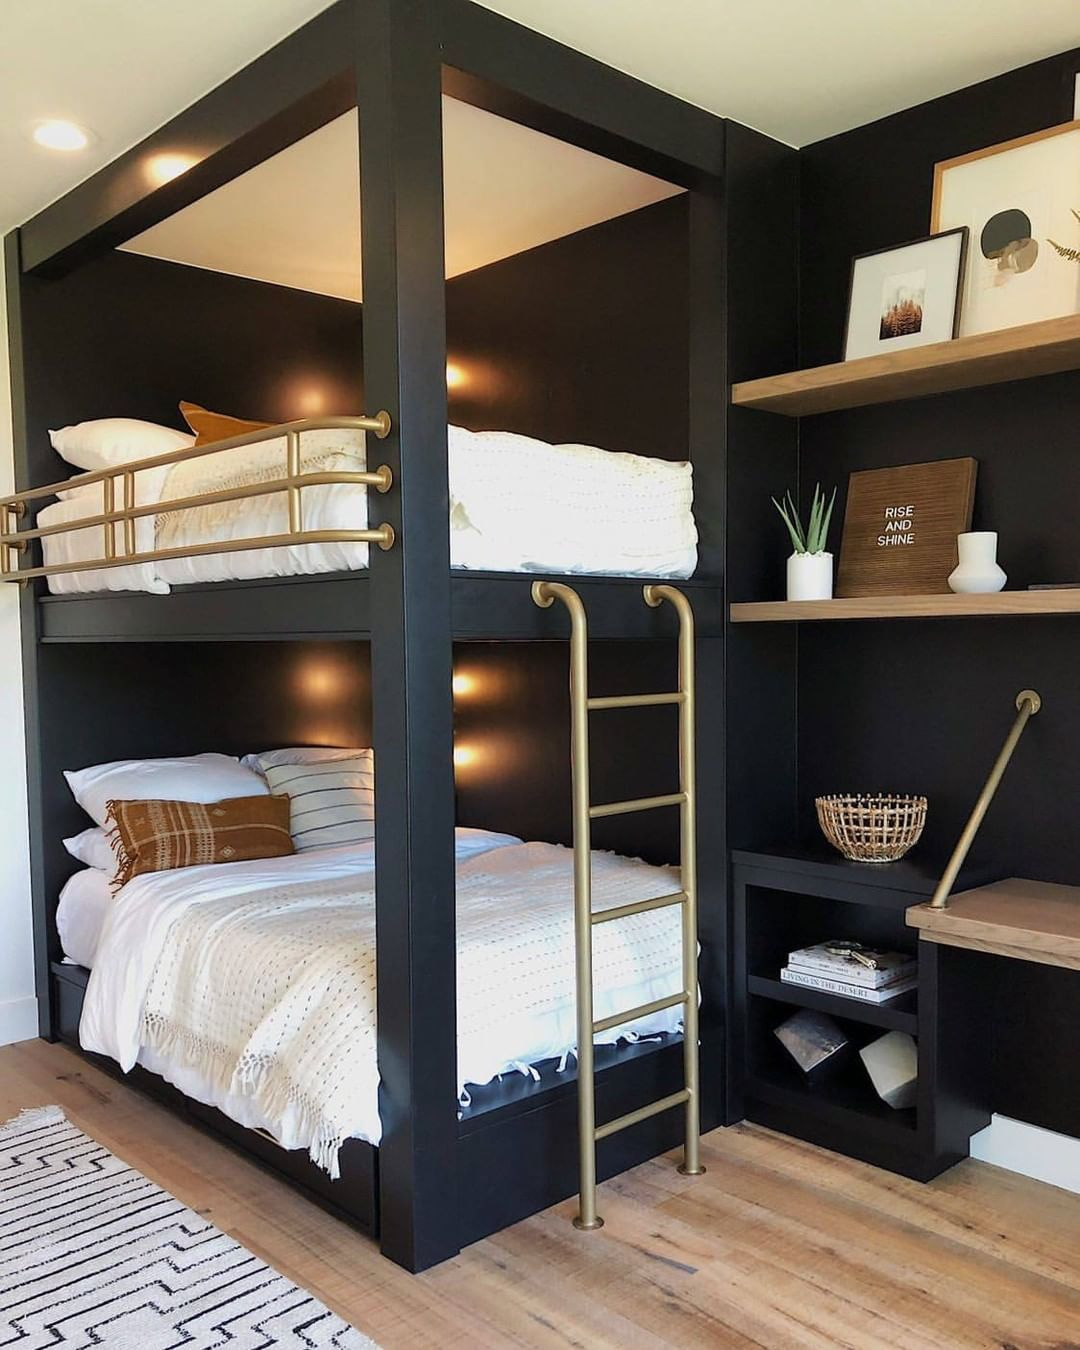 Lonny Posted On Instagram Bunk Beds But Make It Fashion Design By Beckiowens Photography By Bunk Bed Designs Bunk Beds Built In Built In Bunks Cool bedroom ideas lonny